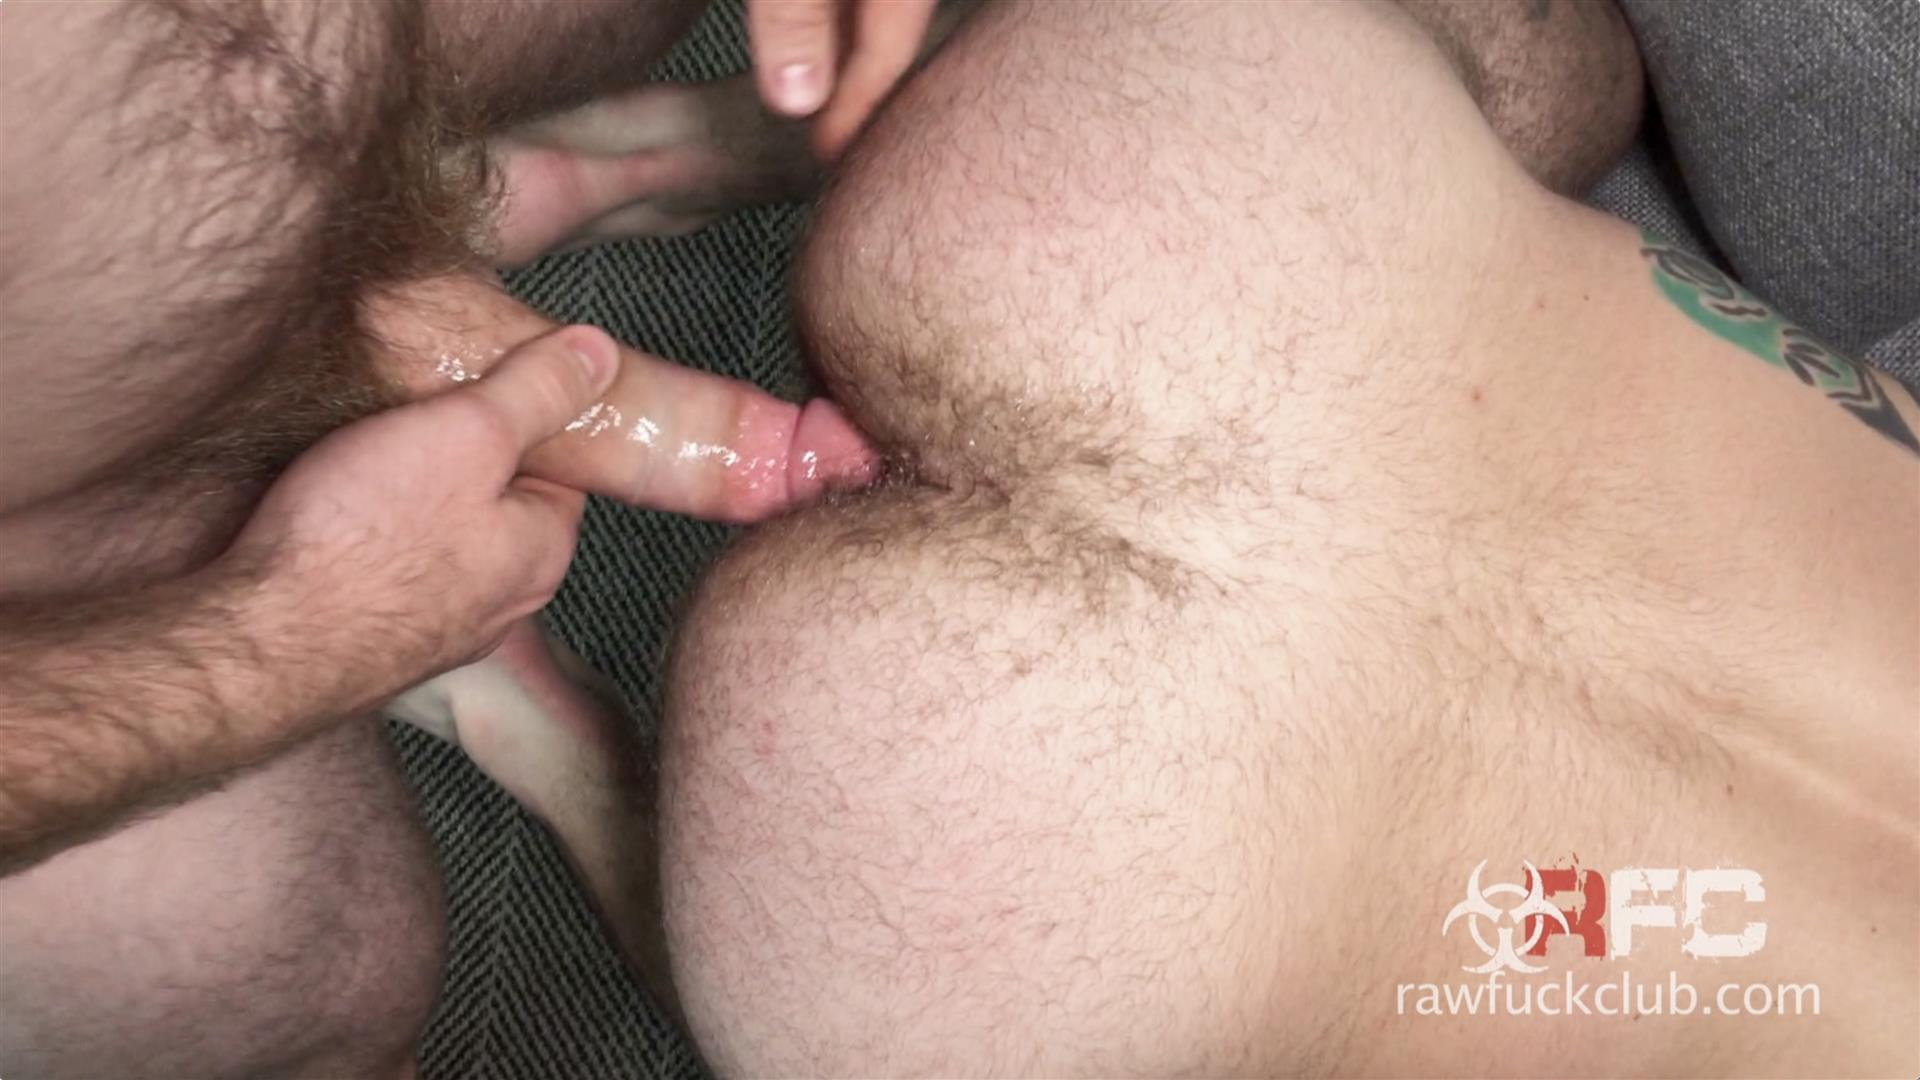 Raw Fuck Club Luke Harding and Nate Stenson Bareback Breeding 07 Nate Stetson Gives Luke Harding a Deep Bareback Breeding